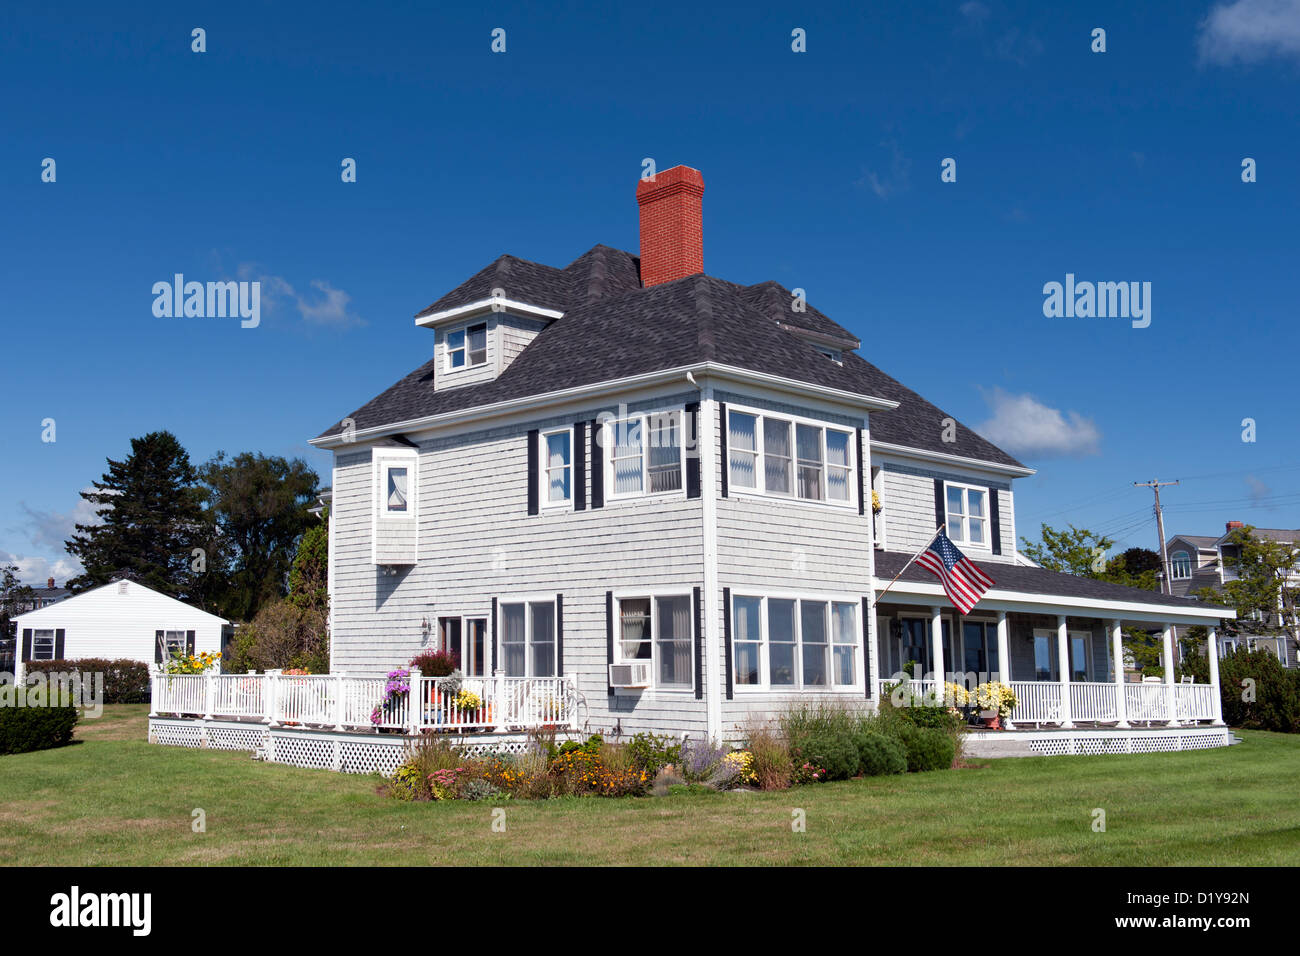 Typical New England Clapboard House In Moody Beach Maine